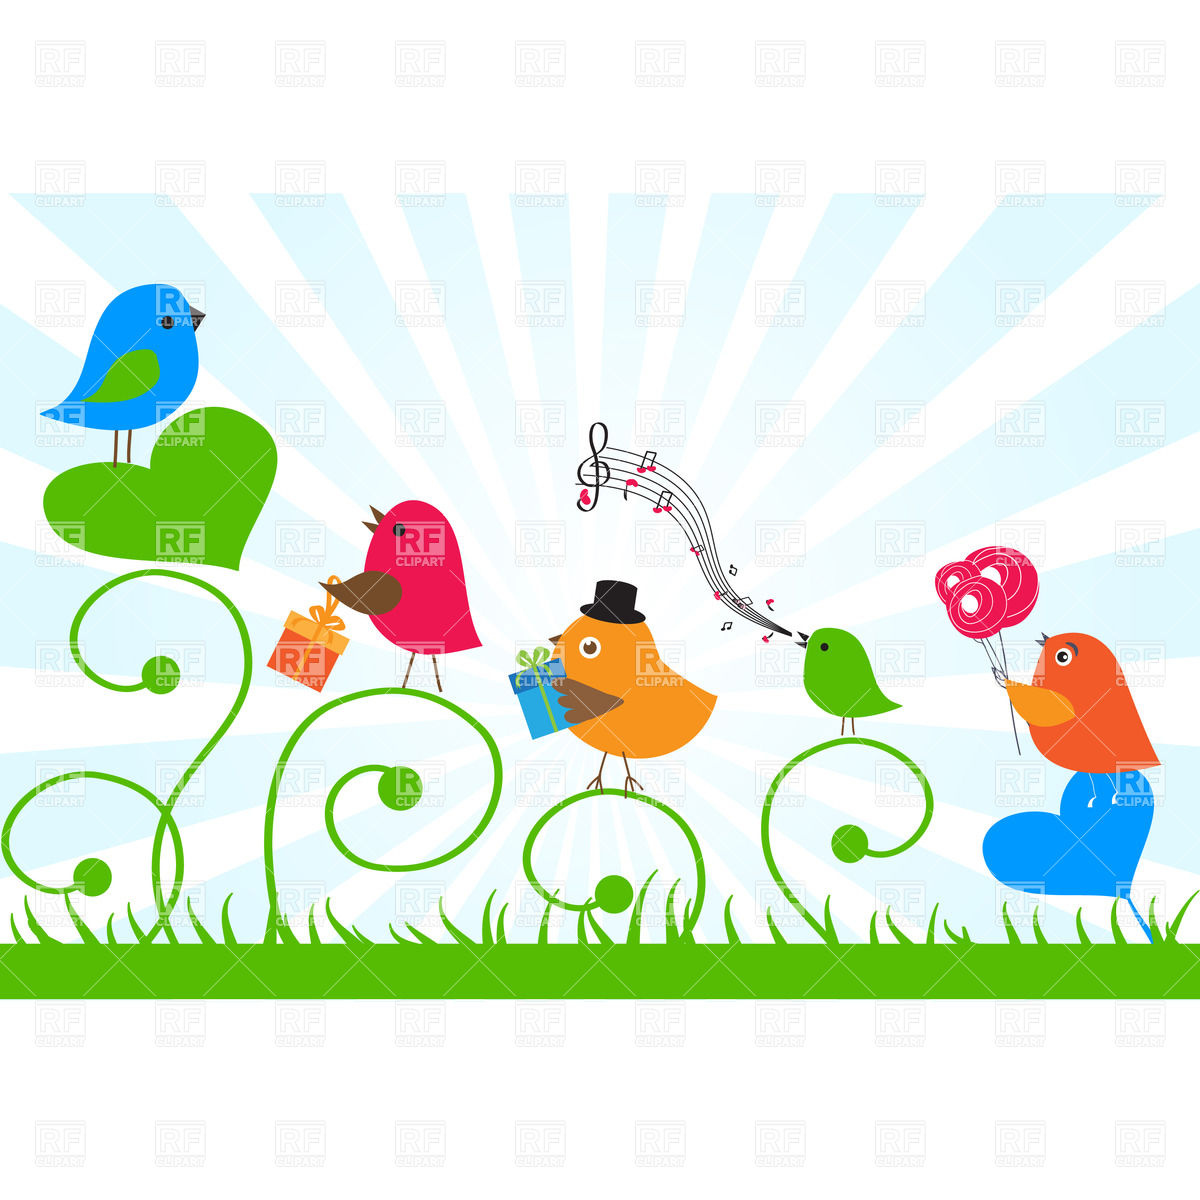 free happy birthday son clipart ; birthday-card-birds-send-greetings-to-a-friend-Download-Royalty-free-Vector-File-EPS-44367